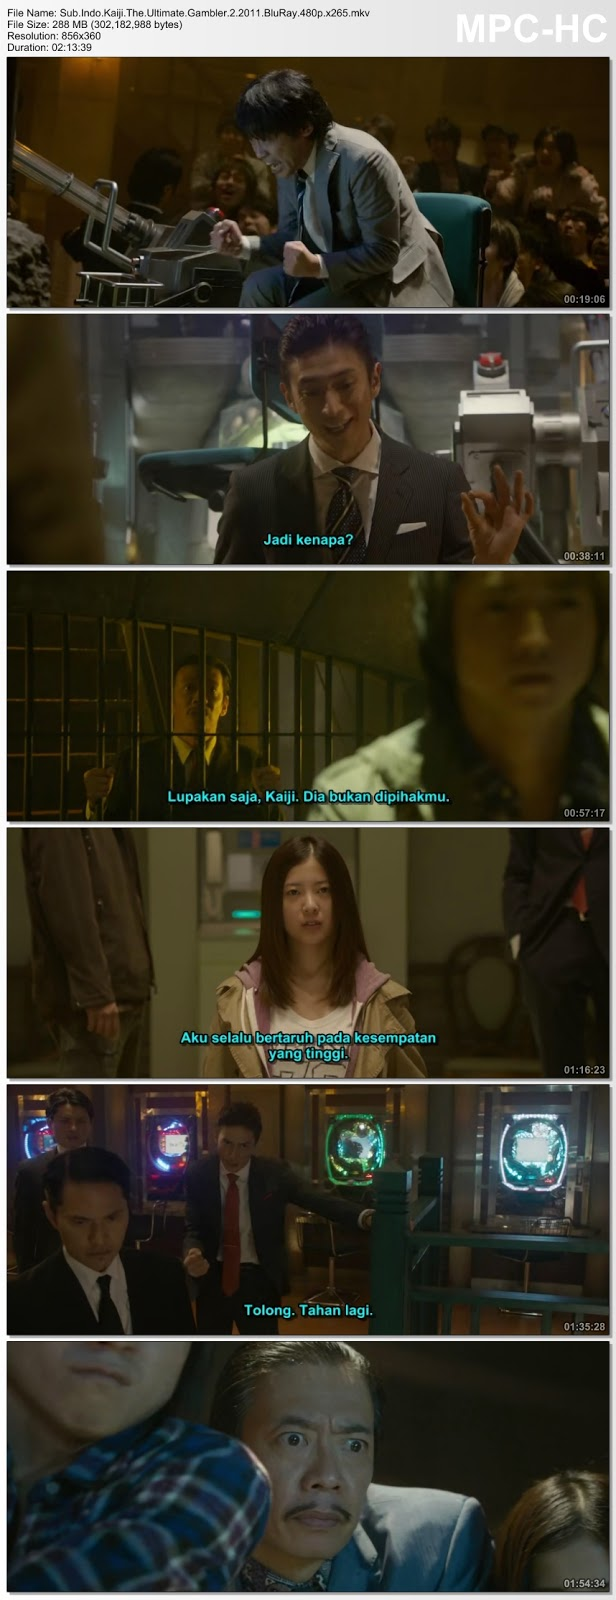 Screenshots Movie Sub.Indo.Kaiji 2: Jinsei Gyakuten gemu aka Kaiji 2: The Ultimate Gambler (2011).BluRay.480p.x265.mkv